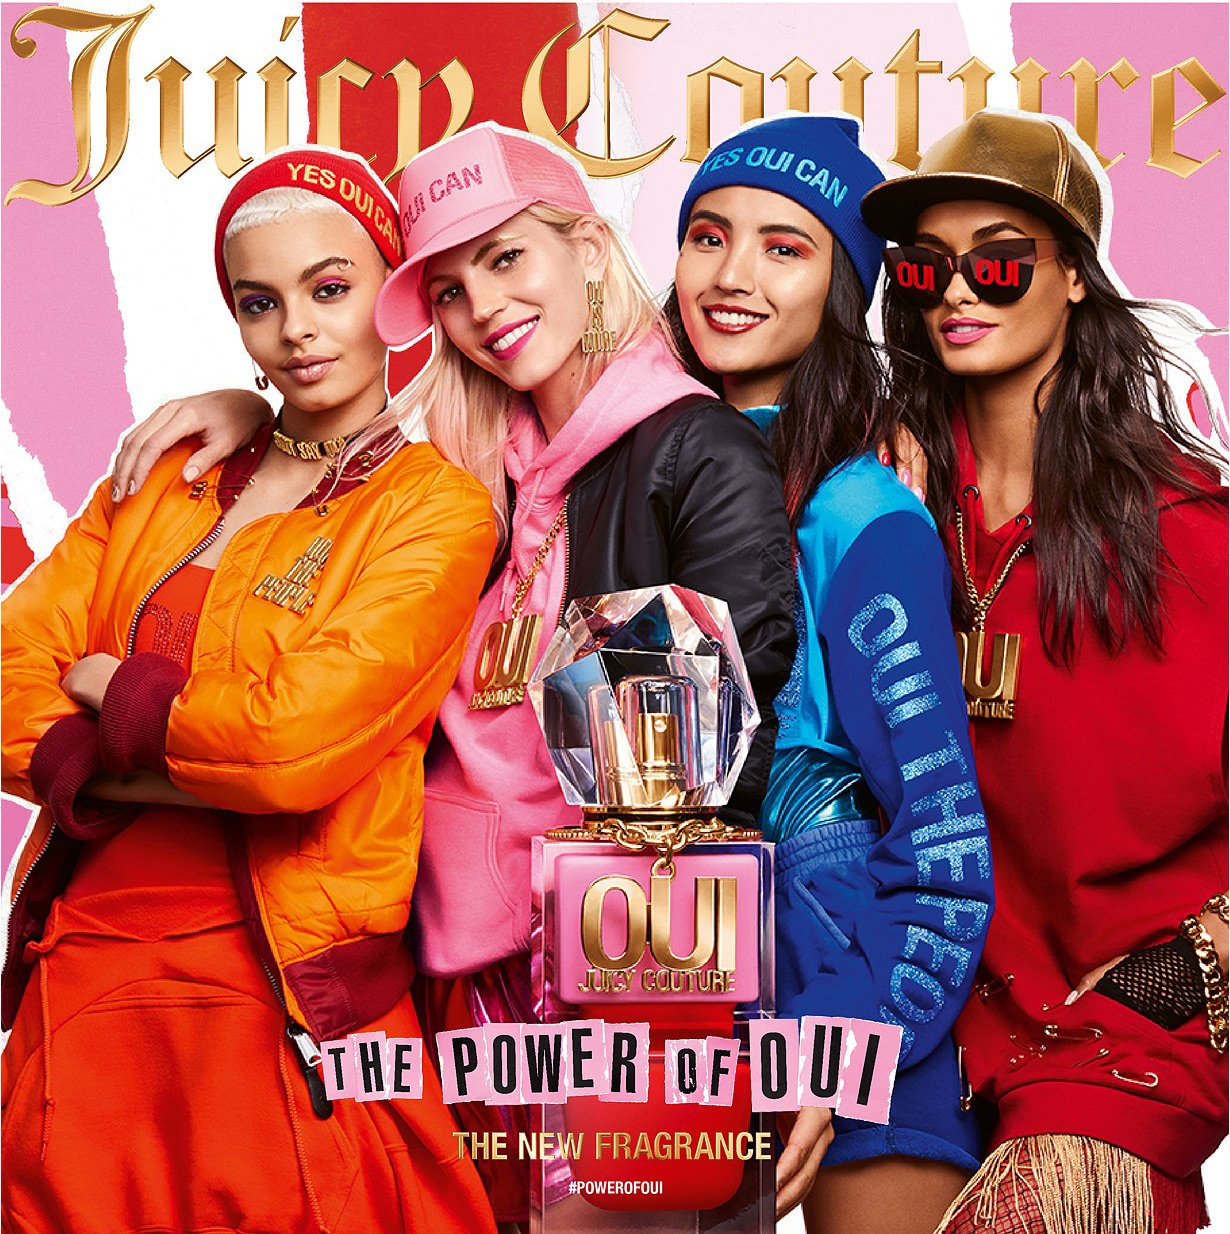 Juicy Couture Oui Perfume